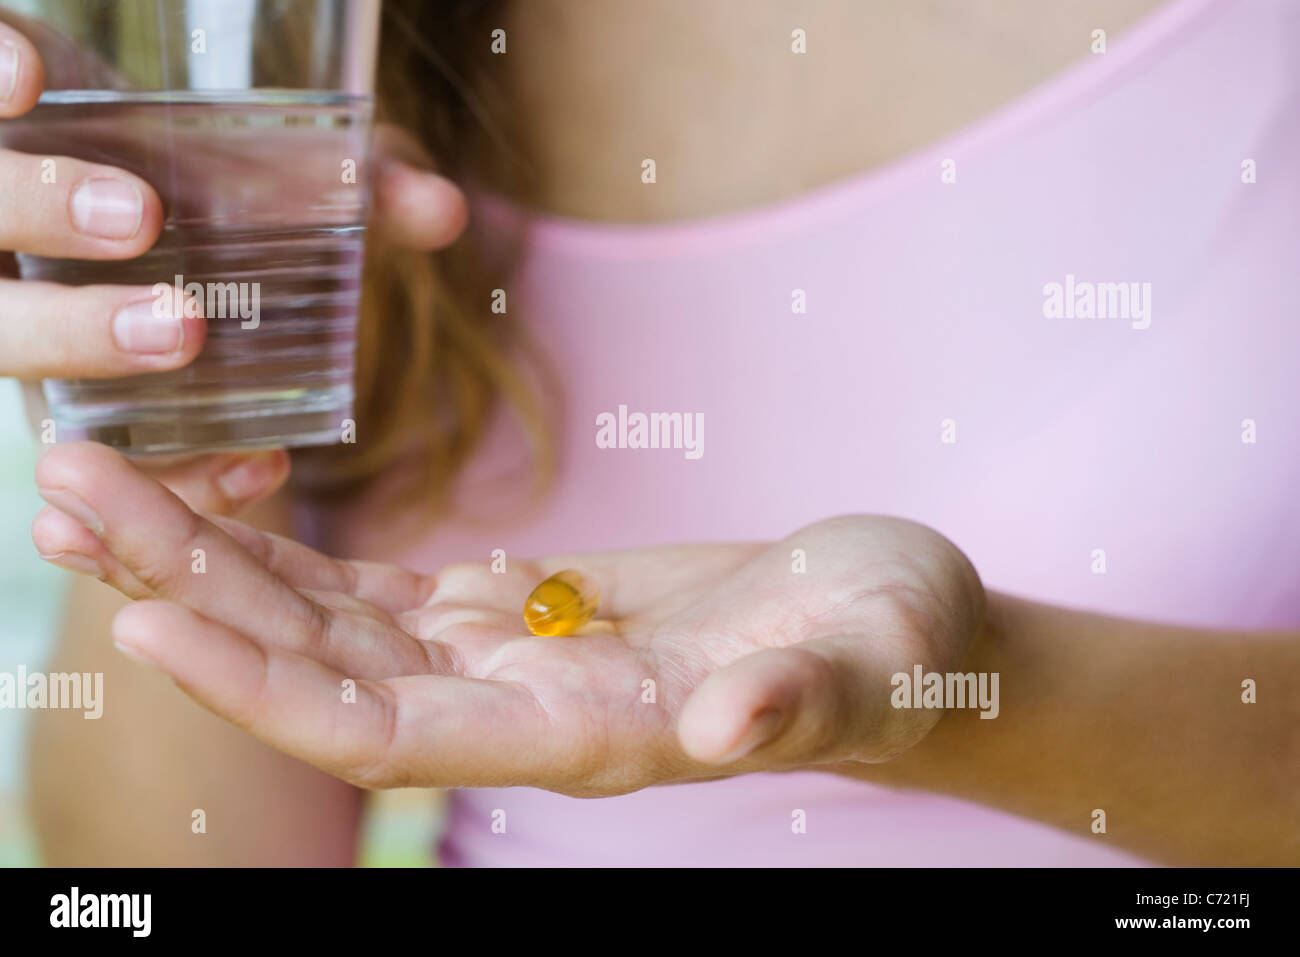 Young woman holding vitamin pill and glass of water, cropped Stock Photo